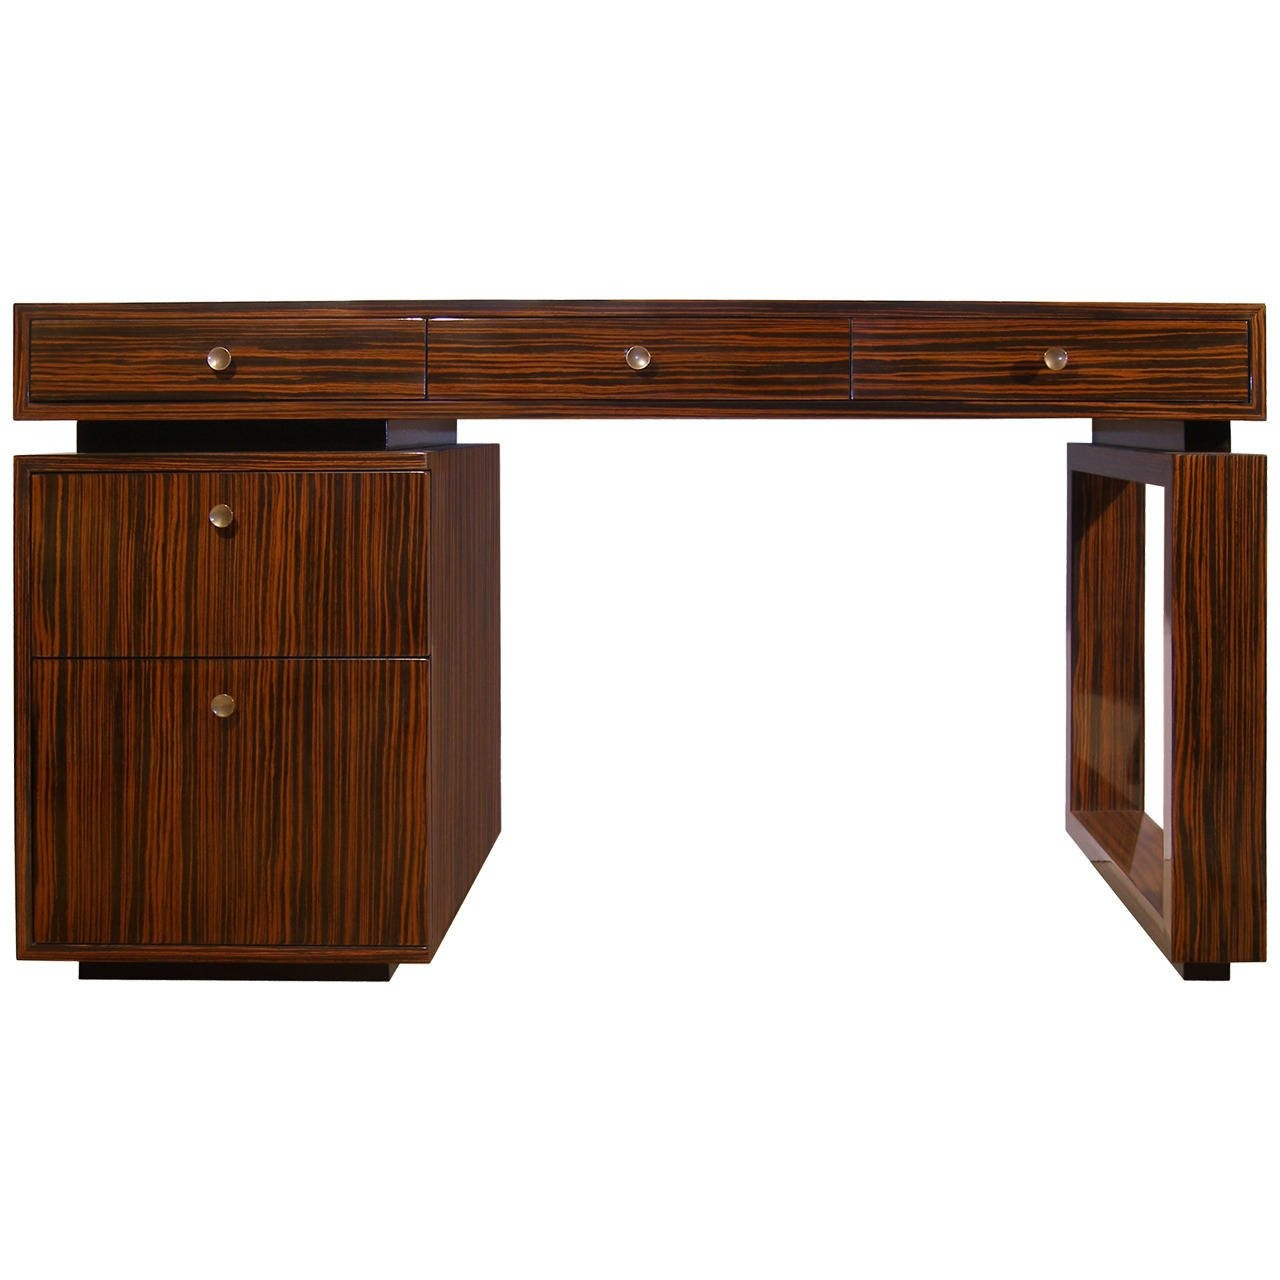 Macassar Ebony Desk with Bronze Pulls